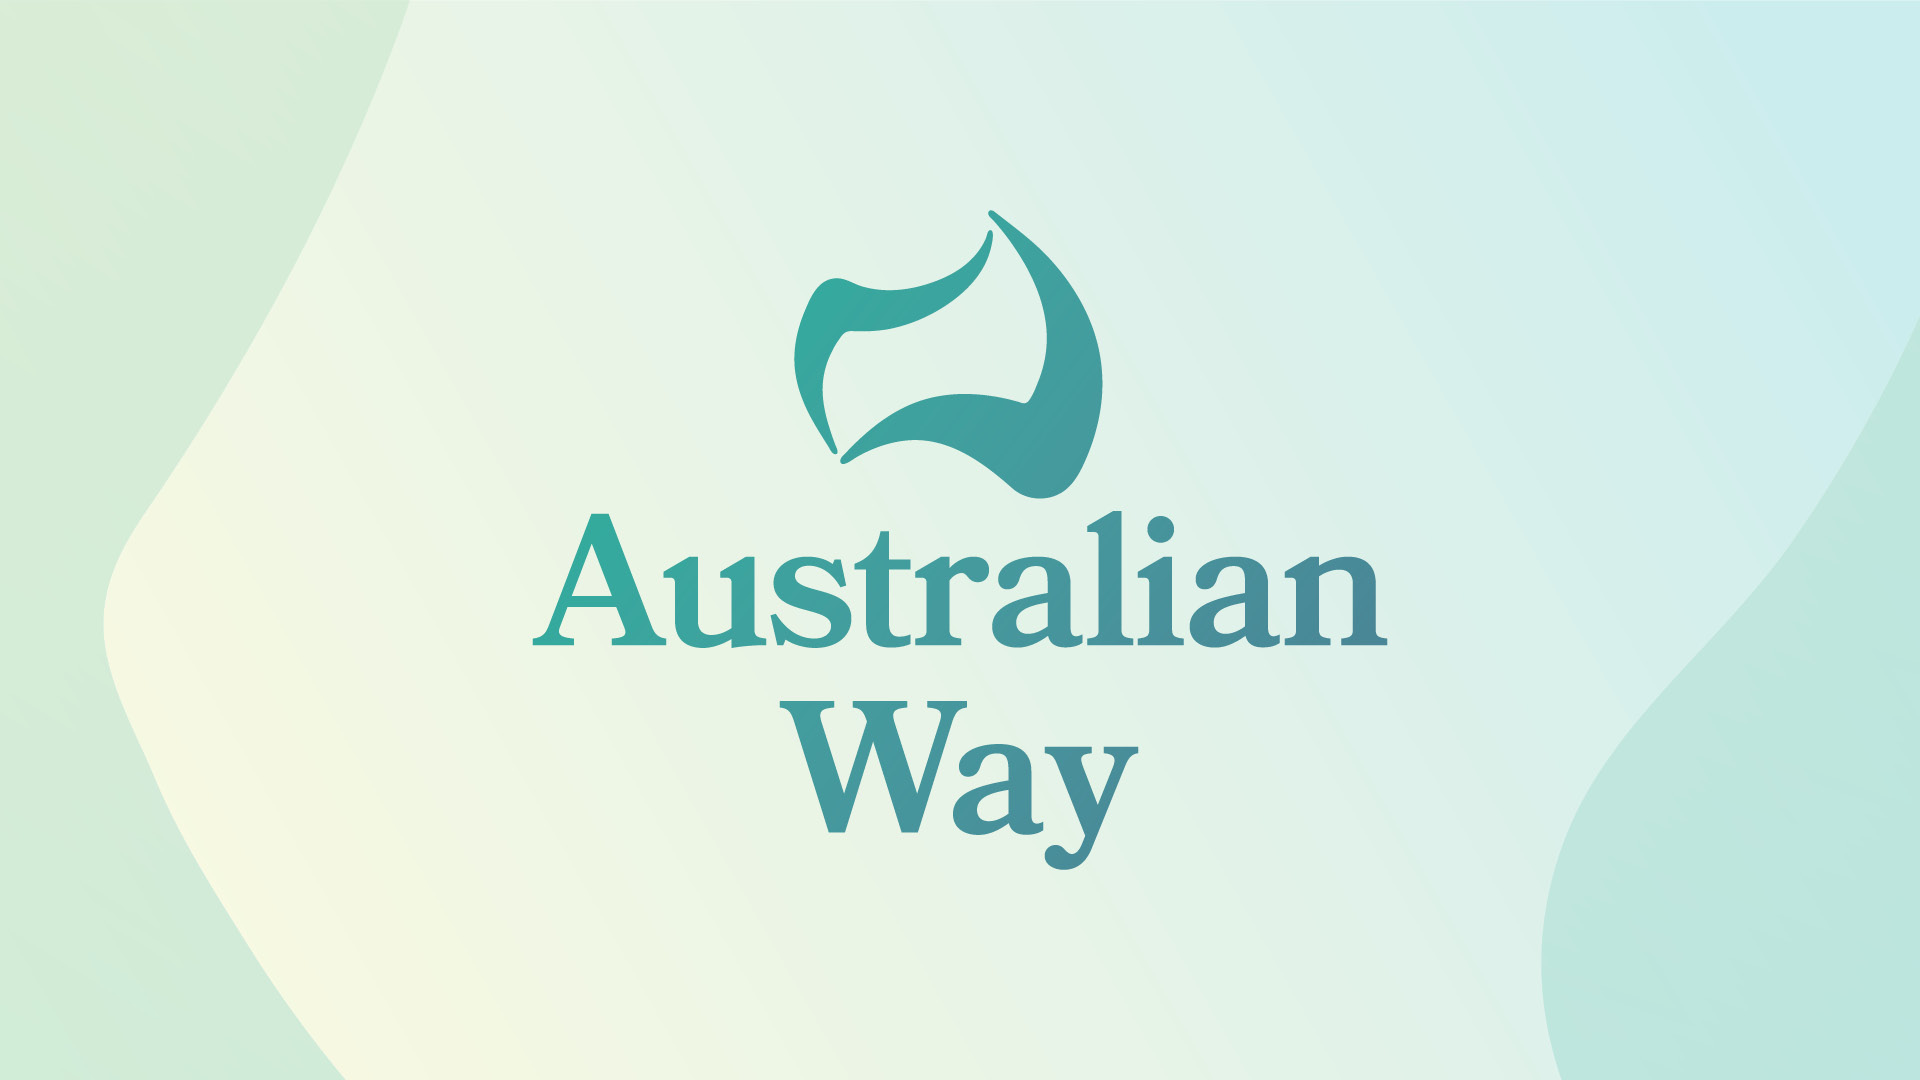 Australian Way Project Images1